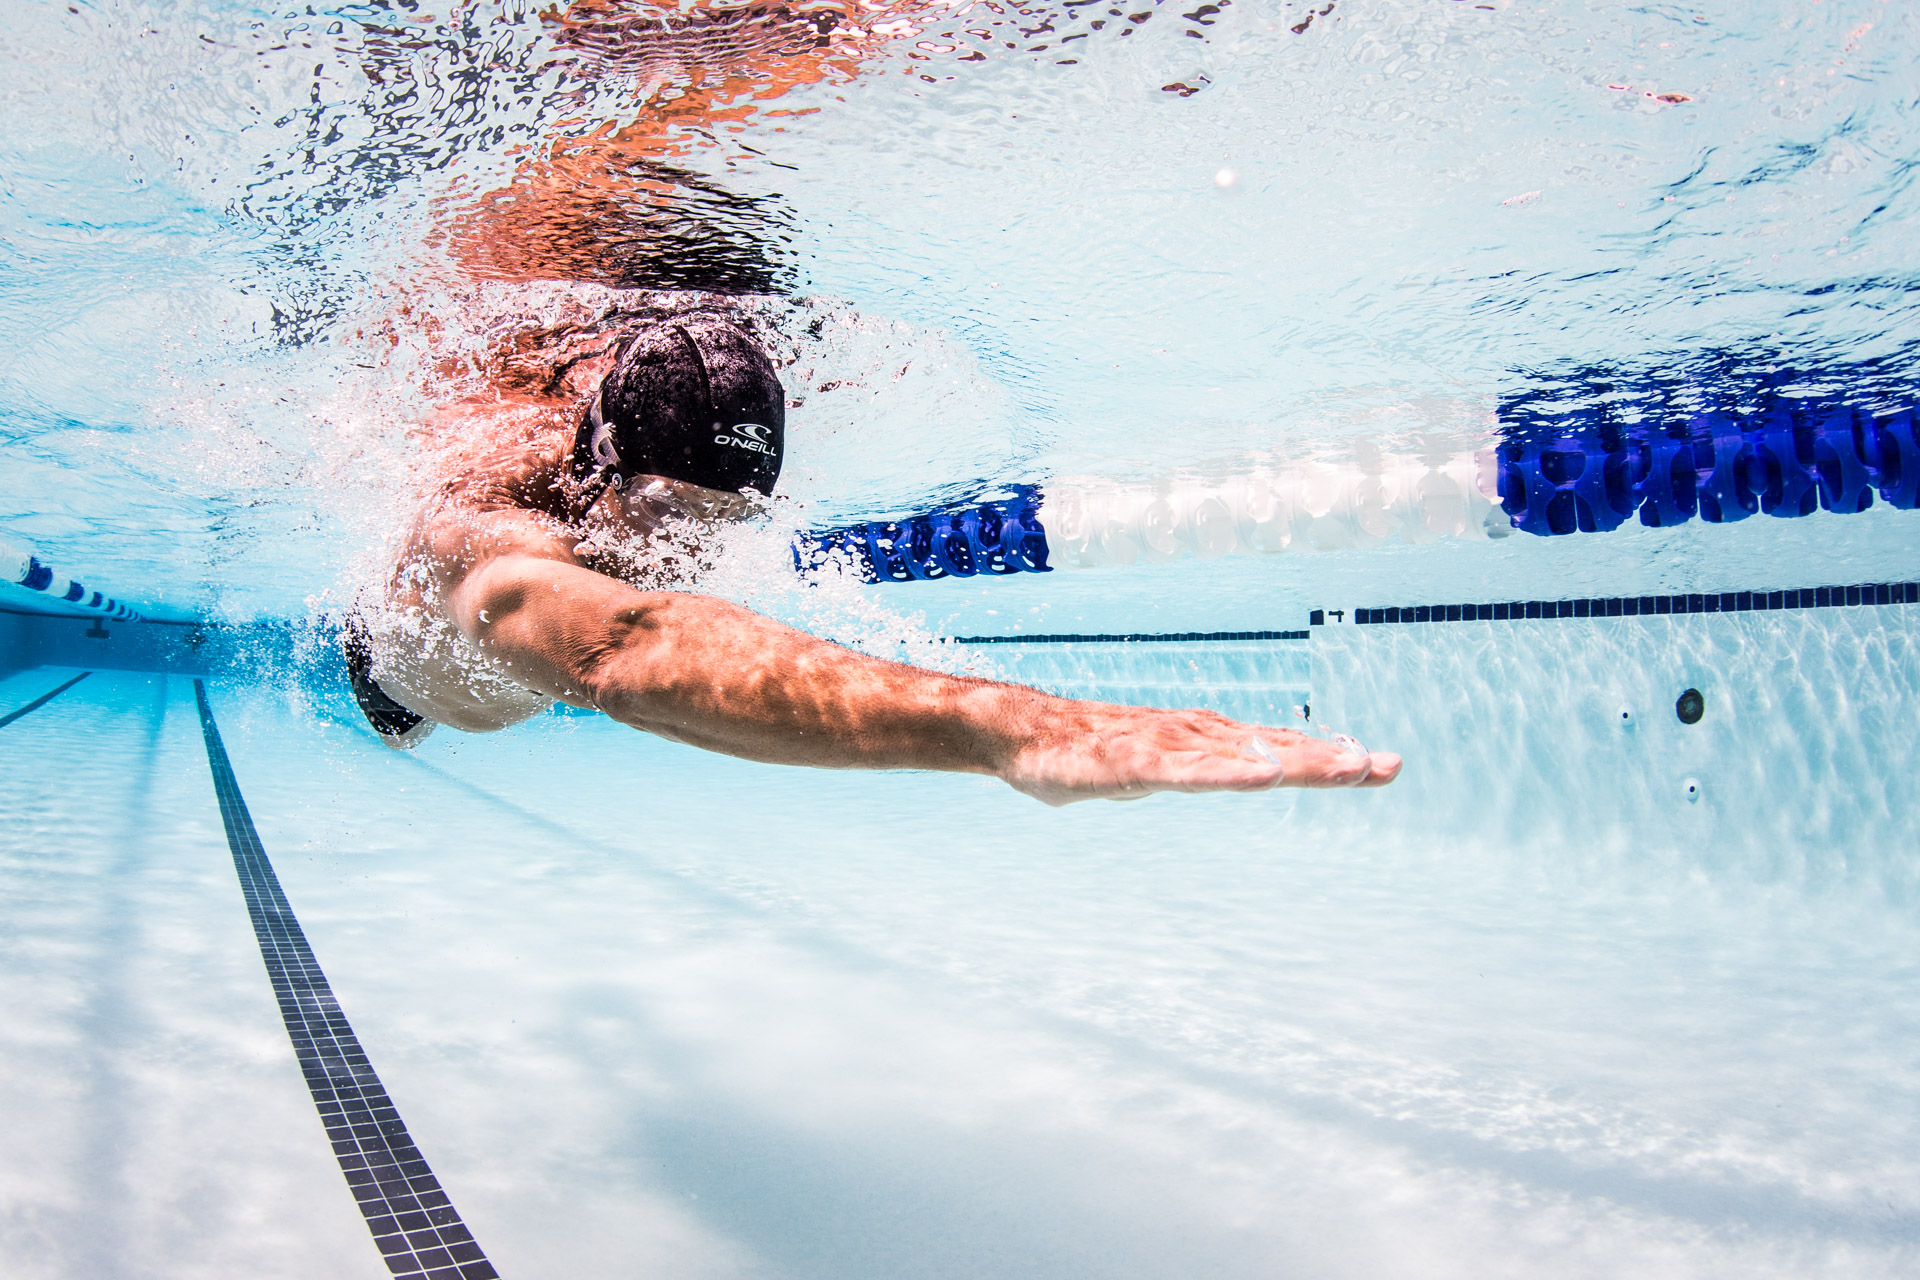 Underwater photography in swimming pool - San Francisco